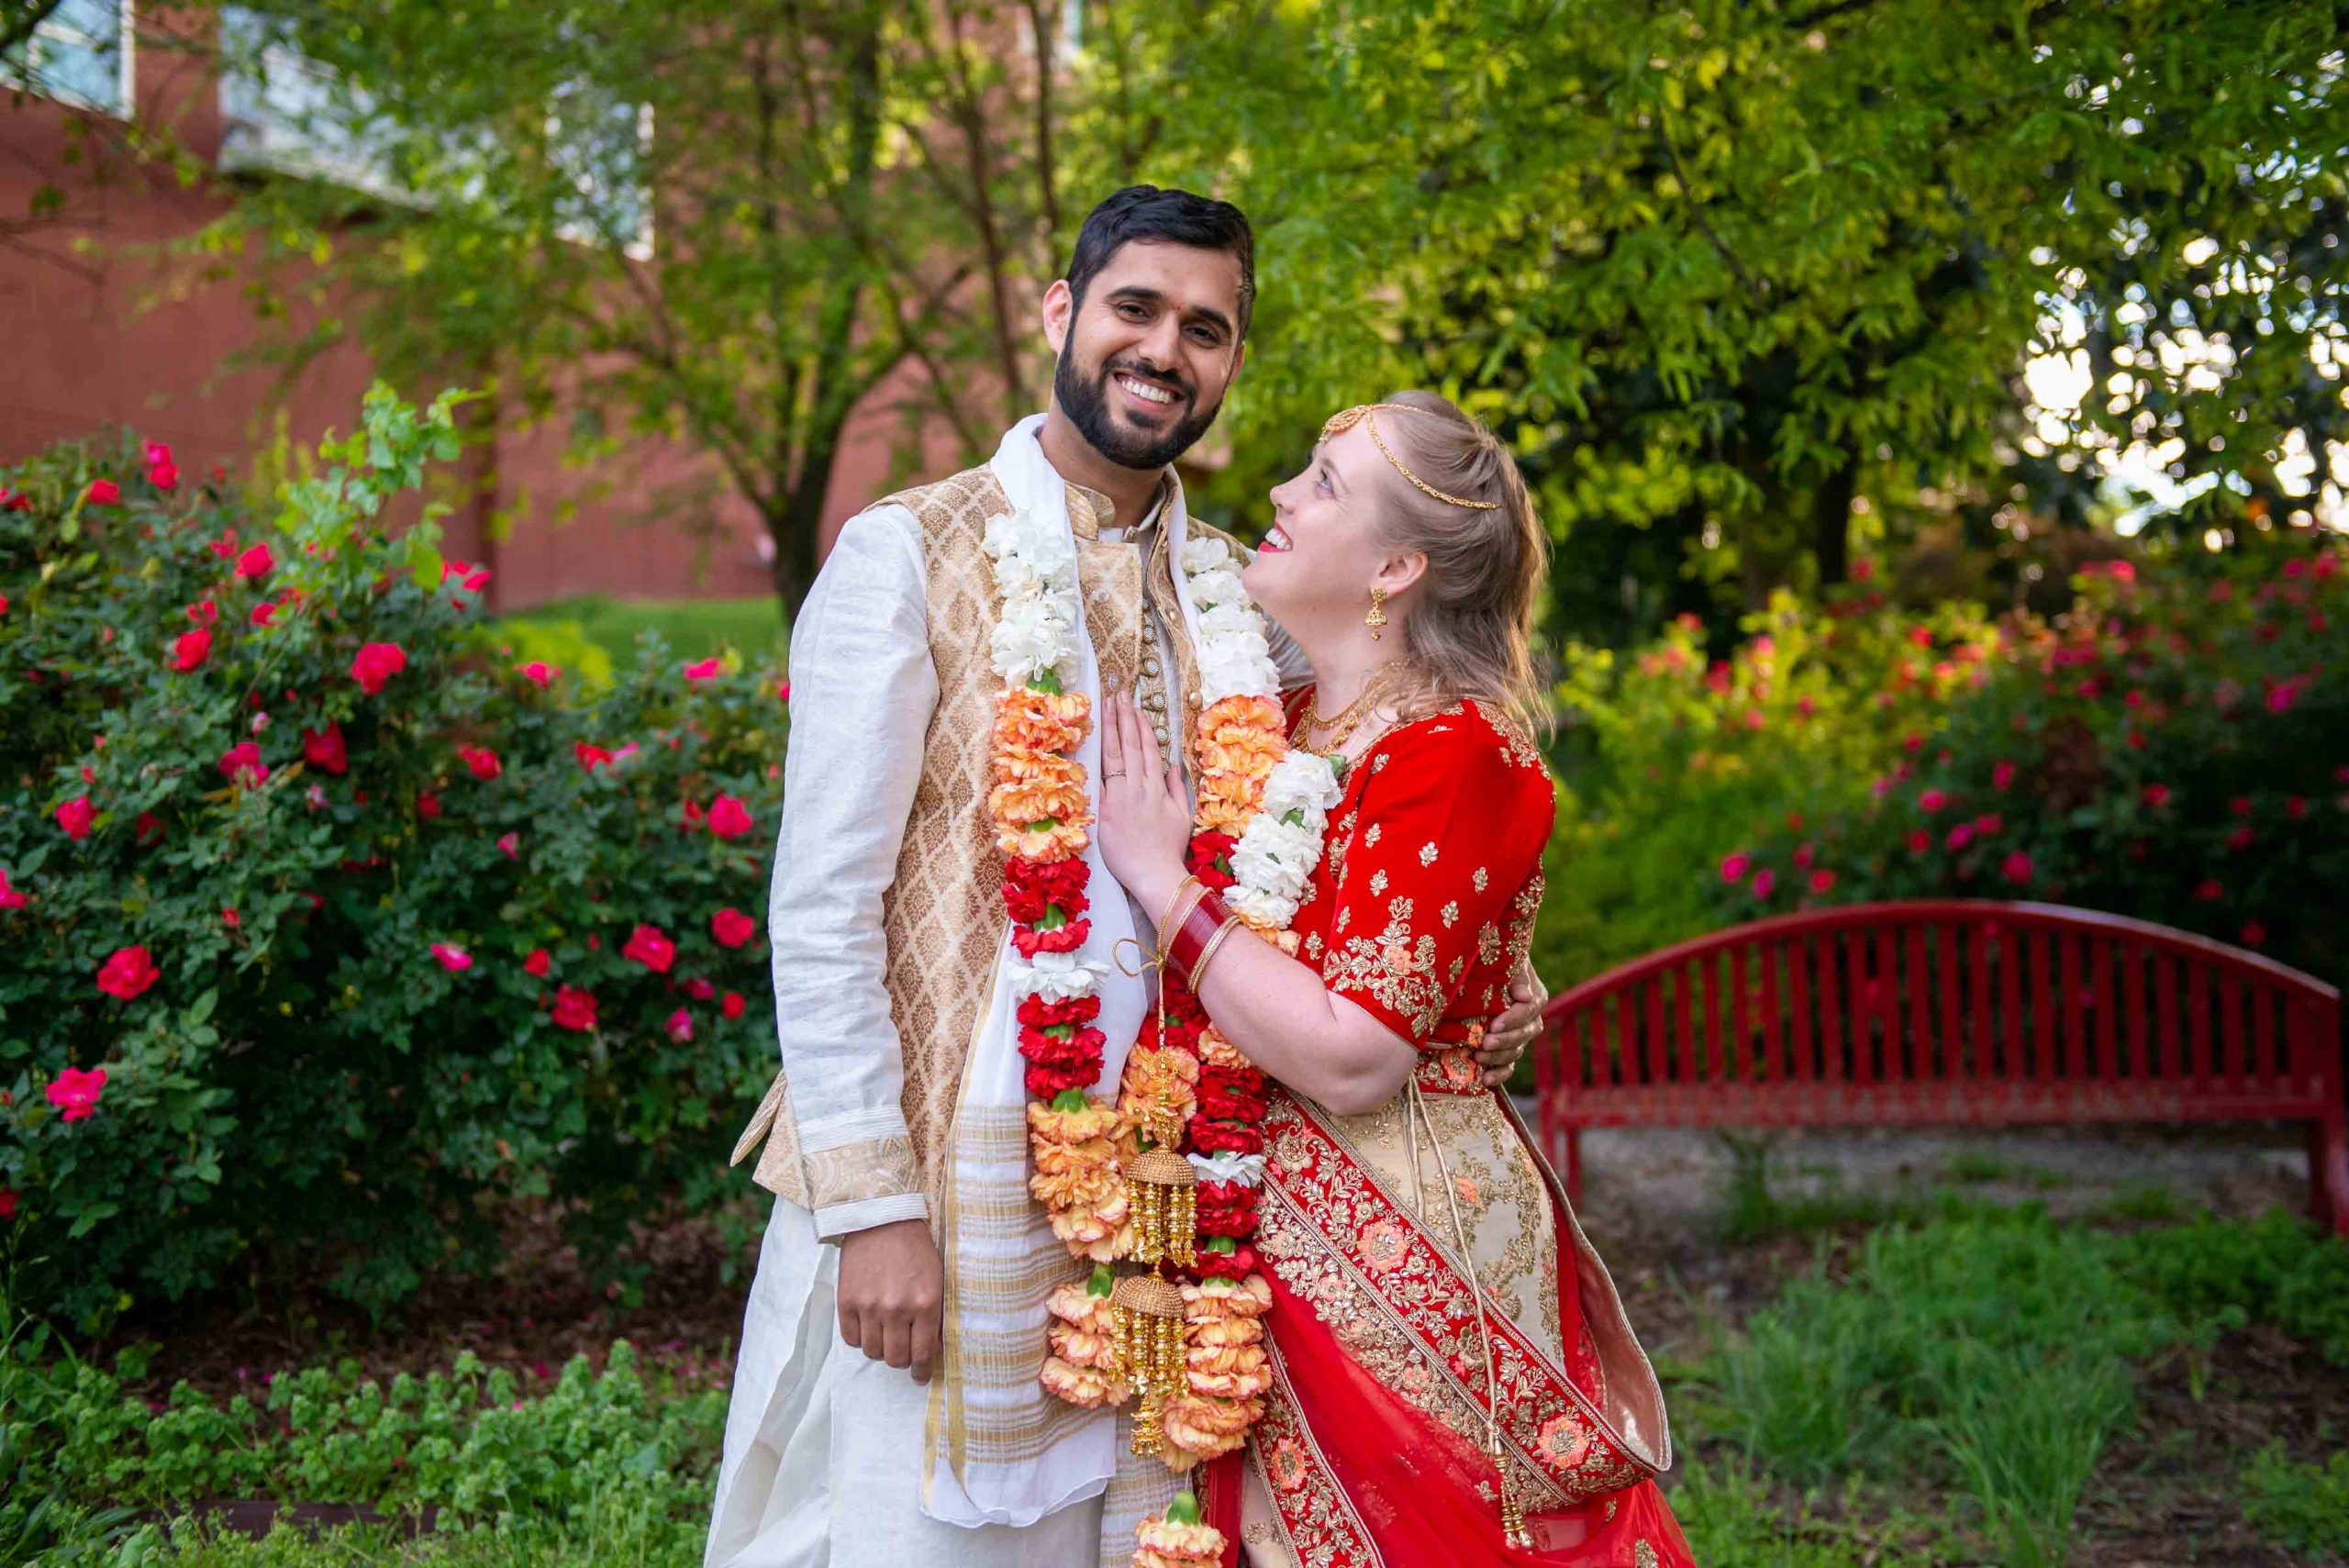 Marian-Varun_Scalaphotography.com-4-scaled Wedding Photography & Bridal Portraits